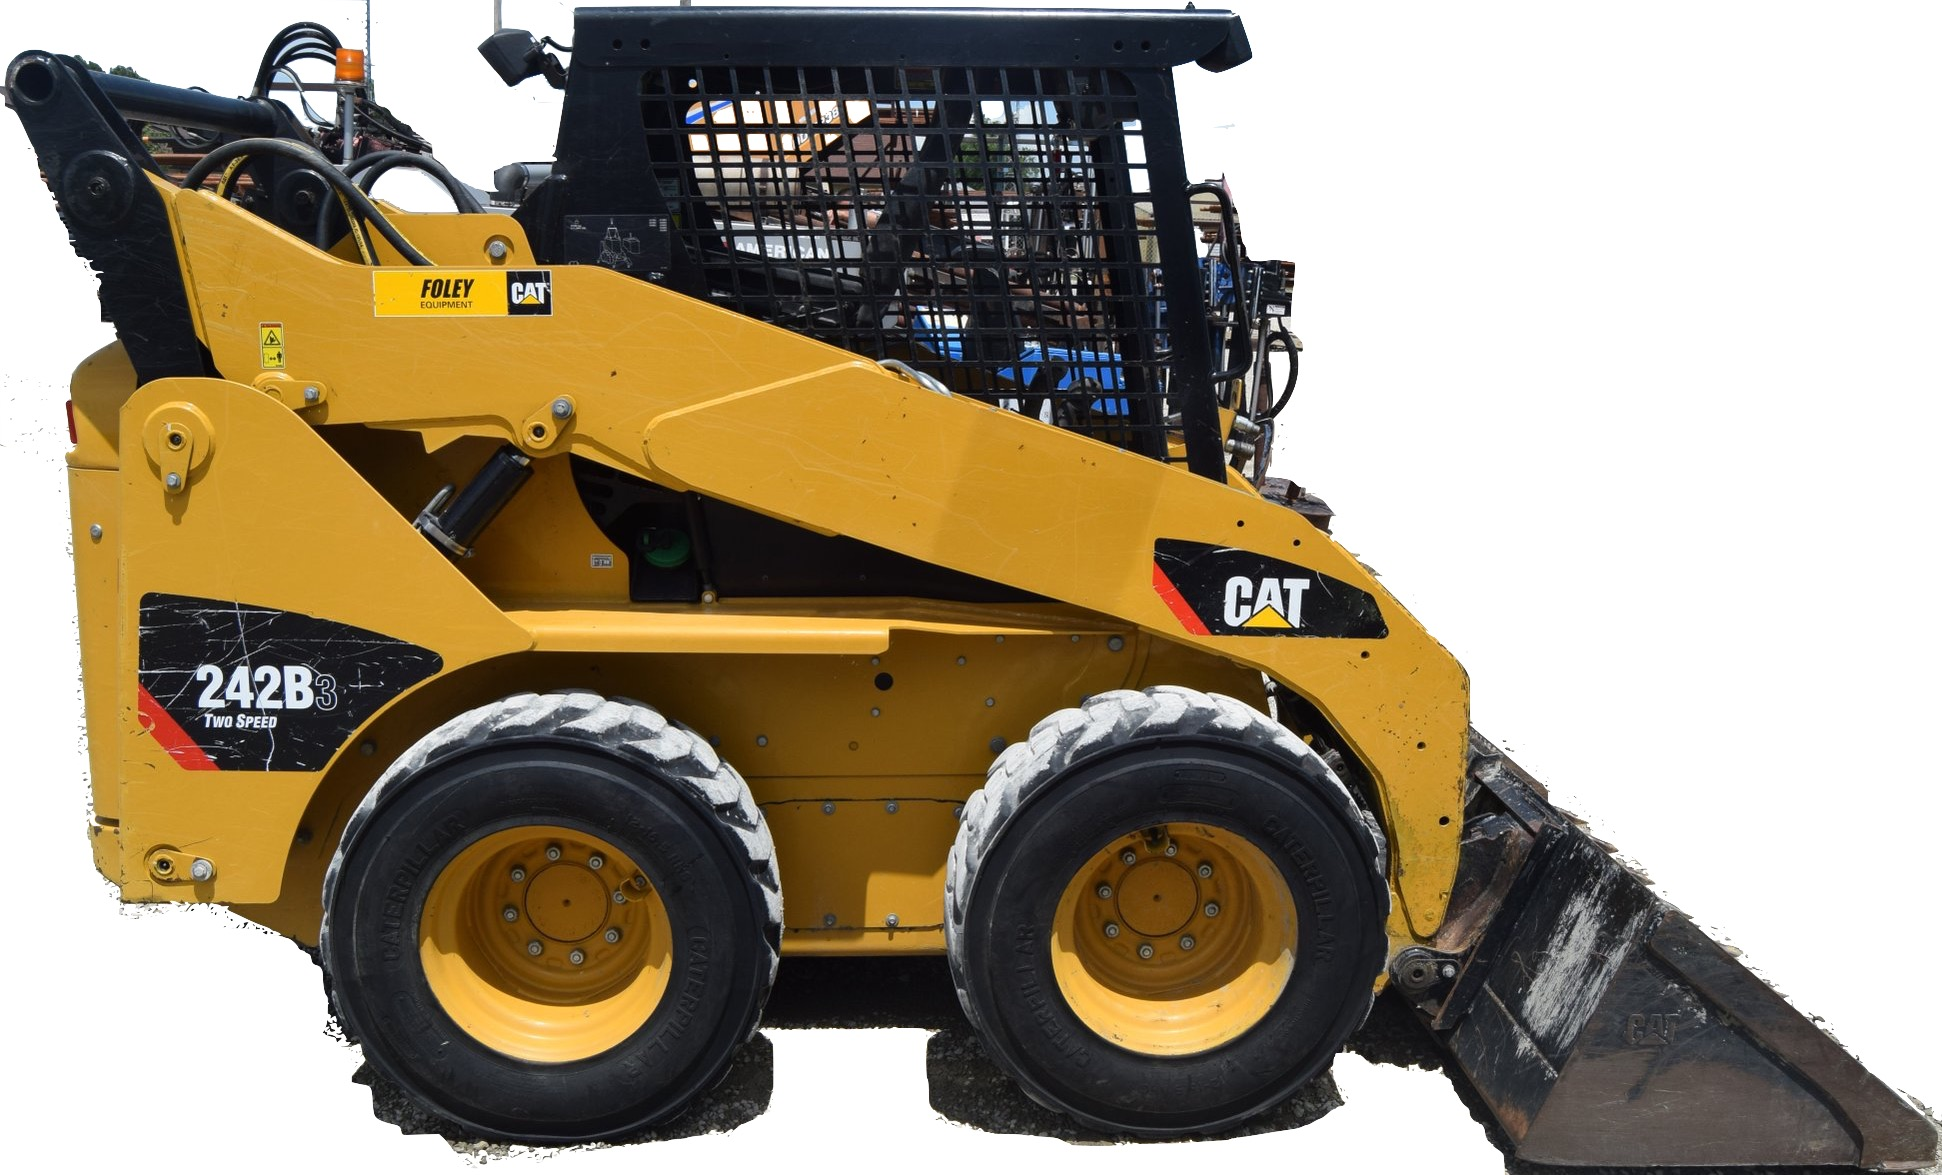 Caterpillar 259B3 Compact Track Loader, 247B3 and 257B3 Multi Terrain  Loaders & 216B3, 226B3, 236B3, 242B3 and 252B3 Skid Steer Loaders Factory  Service ...